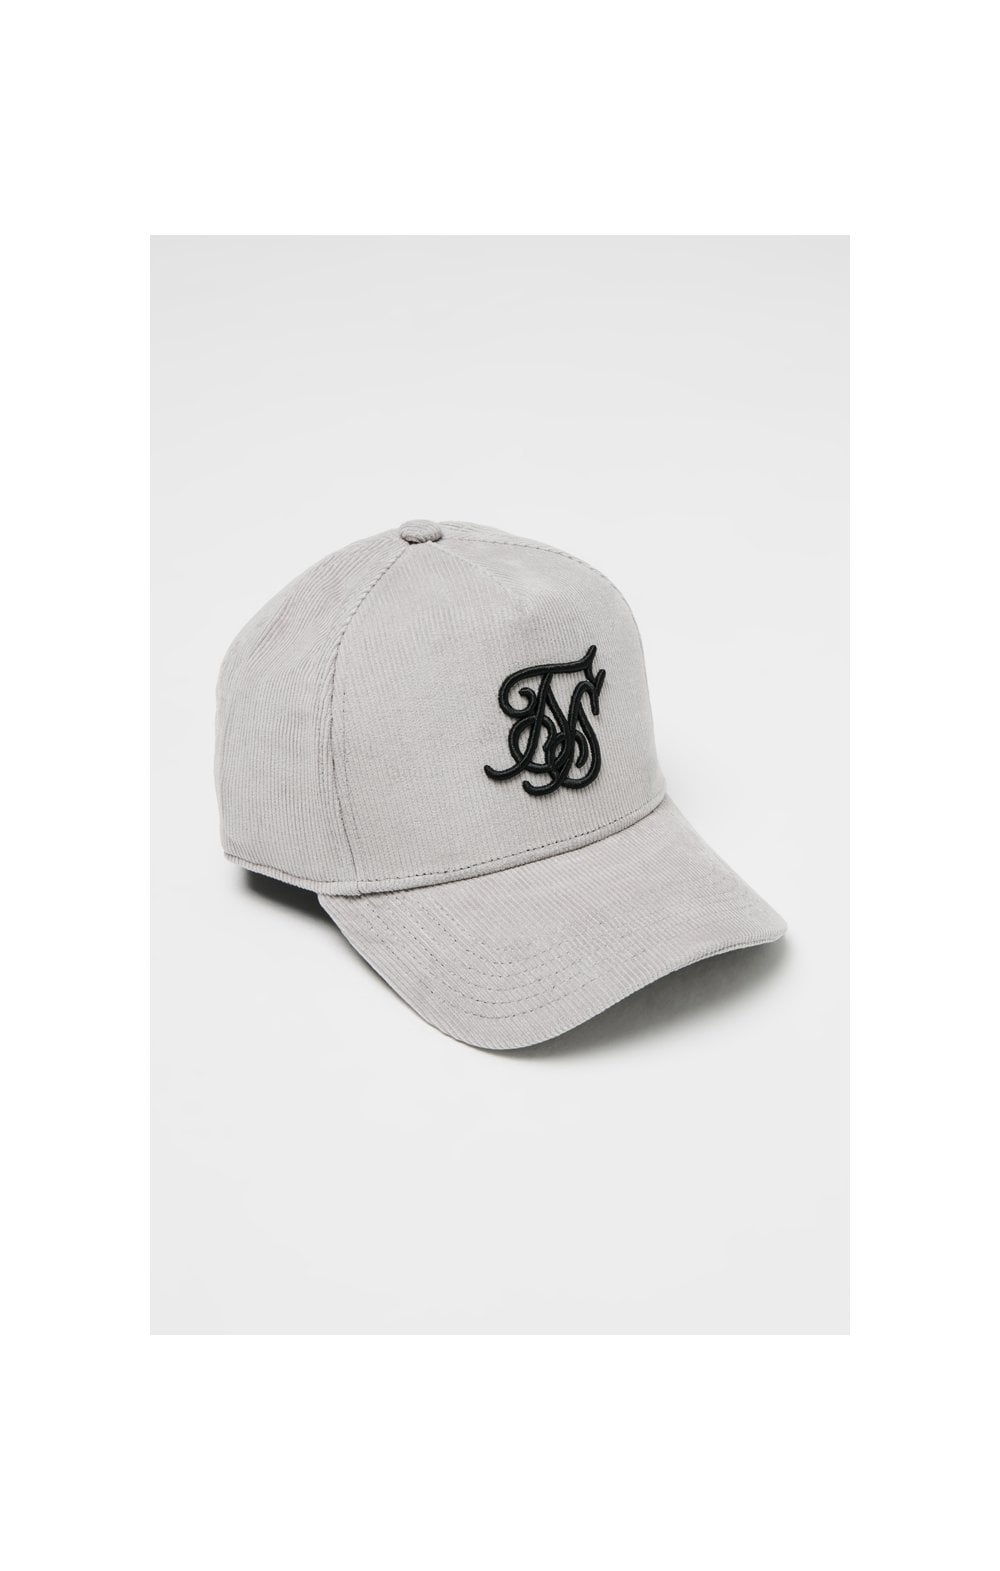 Load image into Gallery viewer, SikSilk Corduroy Full Trucker - Light Grey